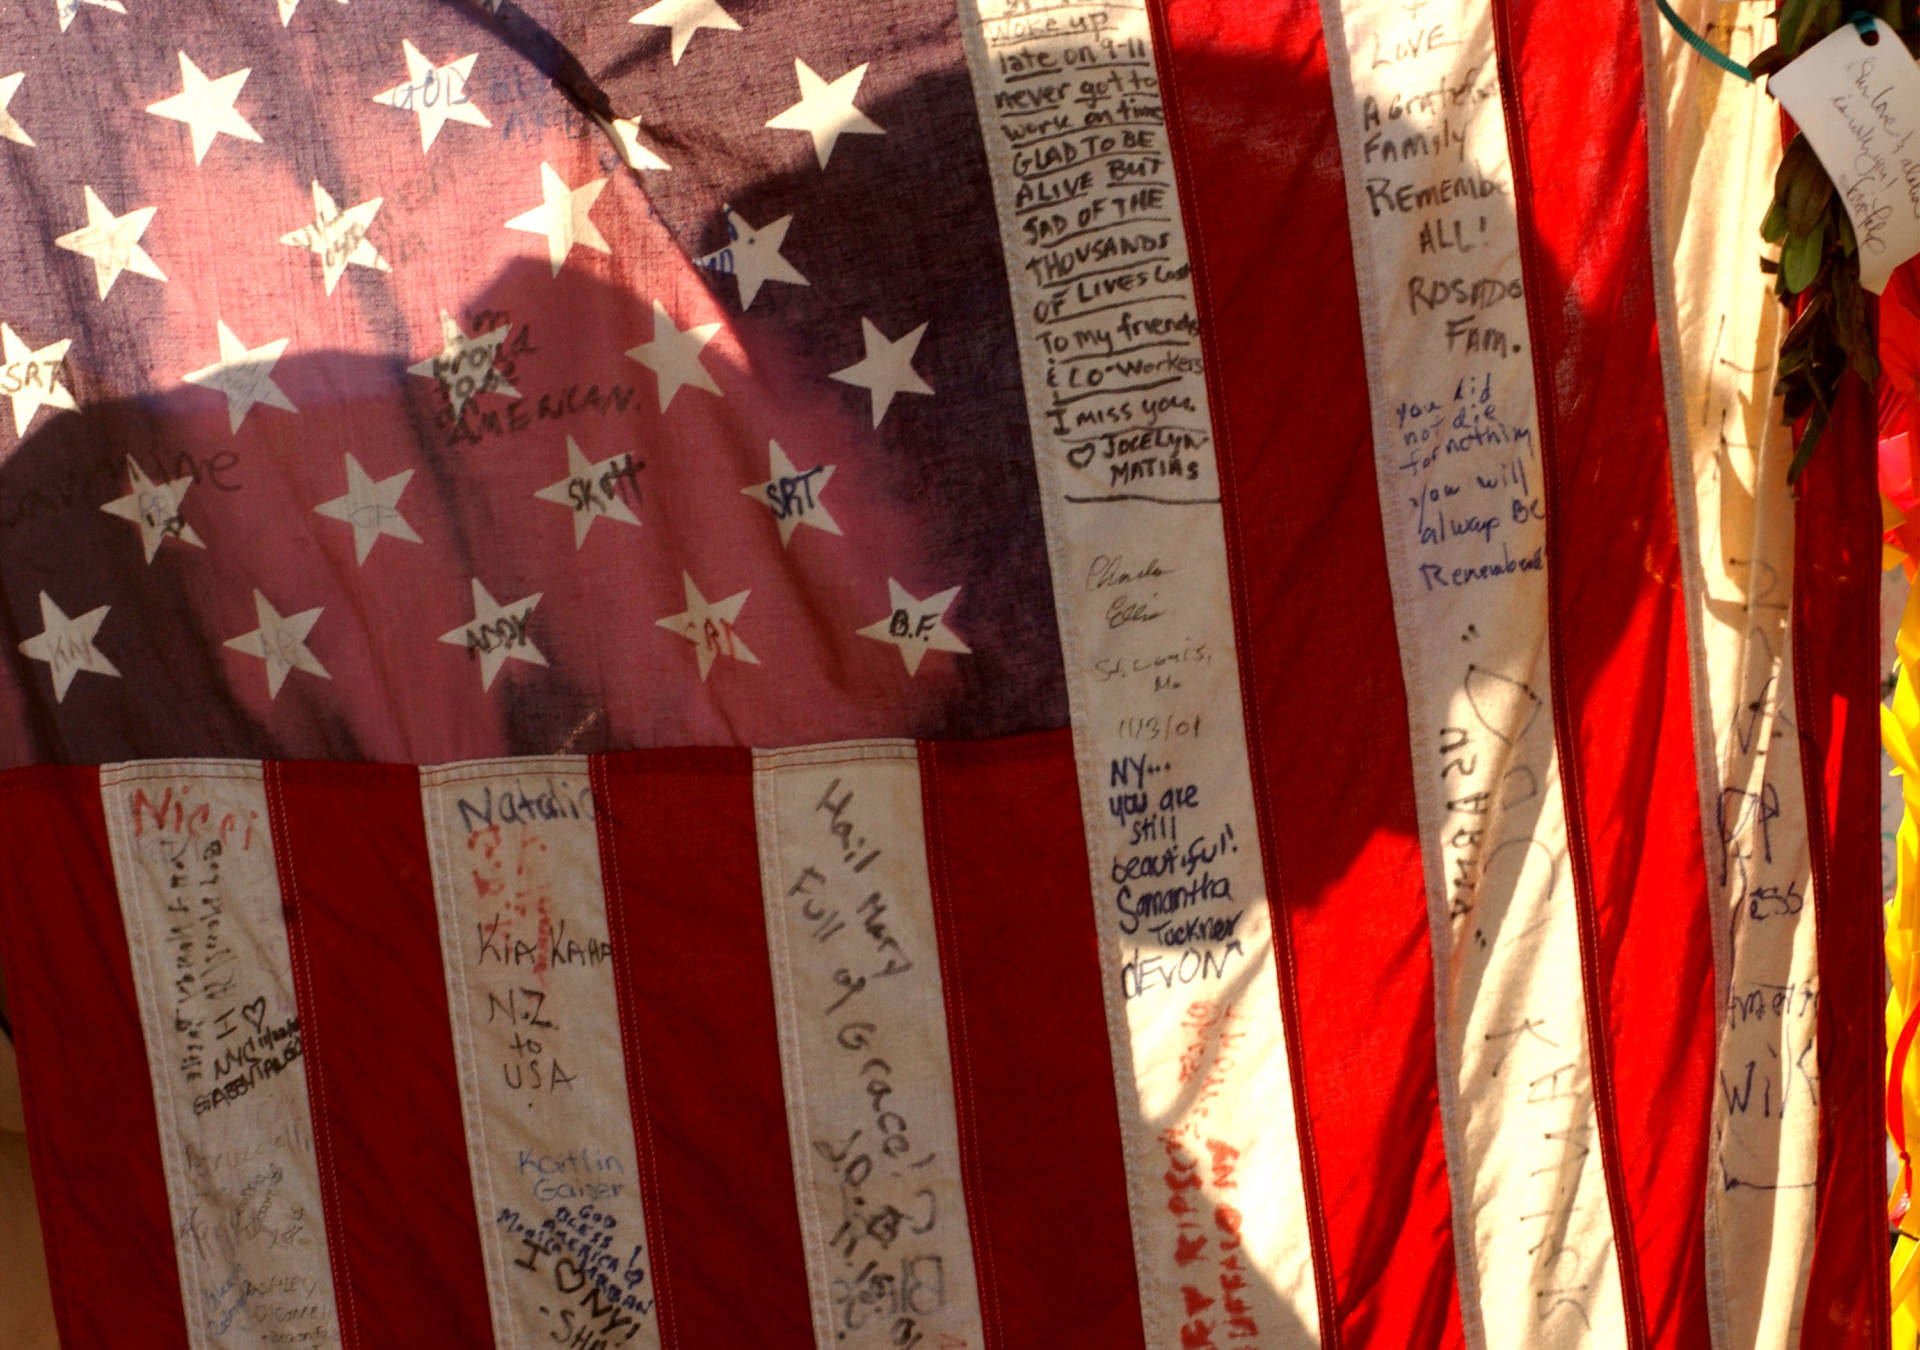 Bay Area Observes 15th Anniversary of 9/11 Attacks